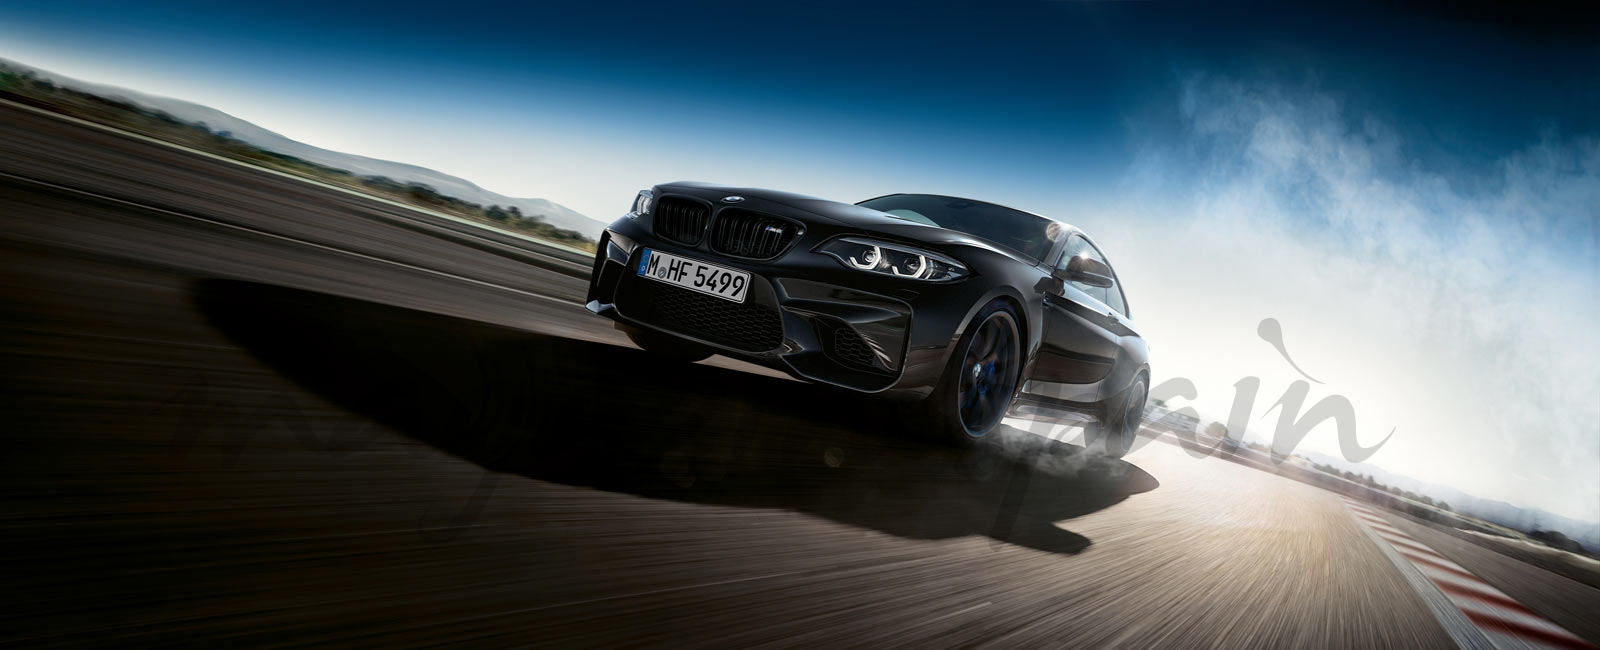 El nuevo BMW M2 Coupé Edition Black Shadow